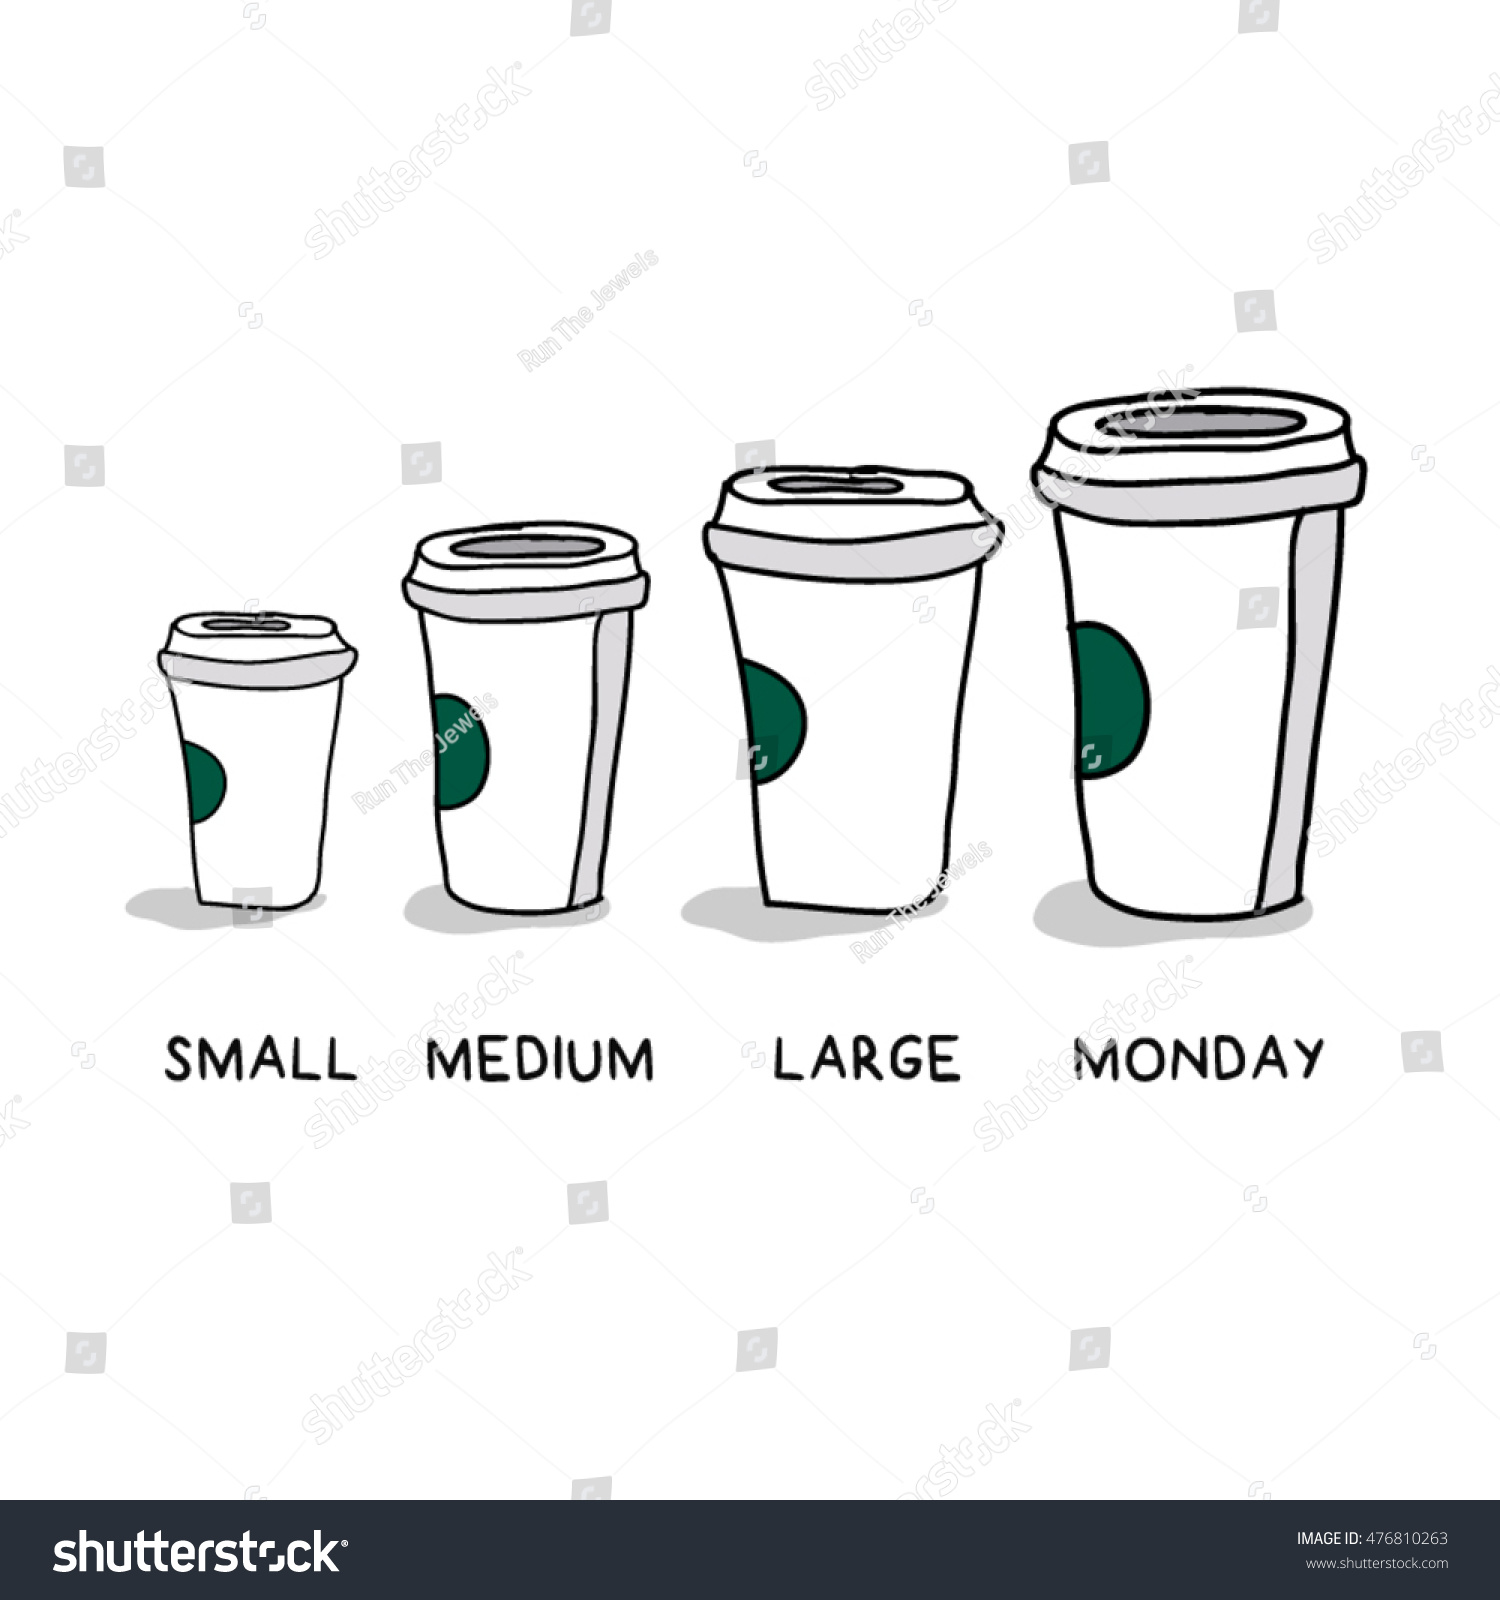 small medium large monday funny concept stock vector royalty free